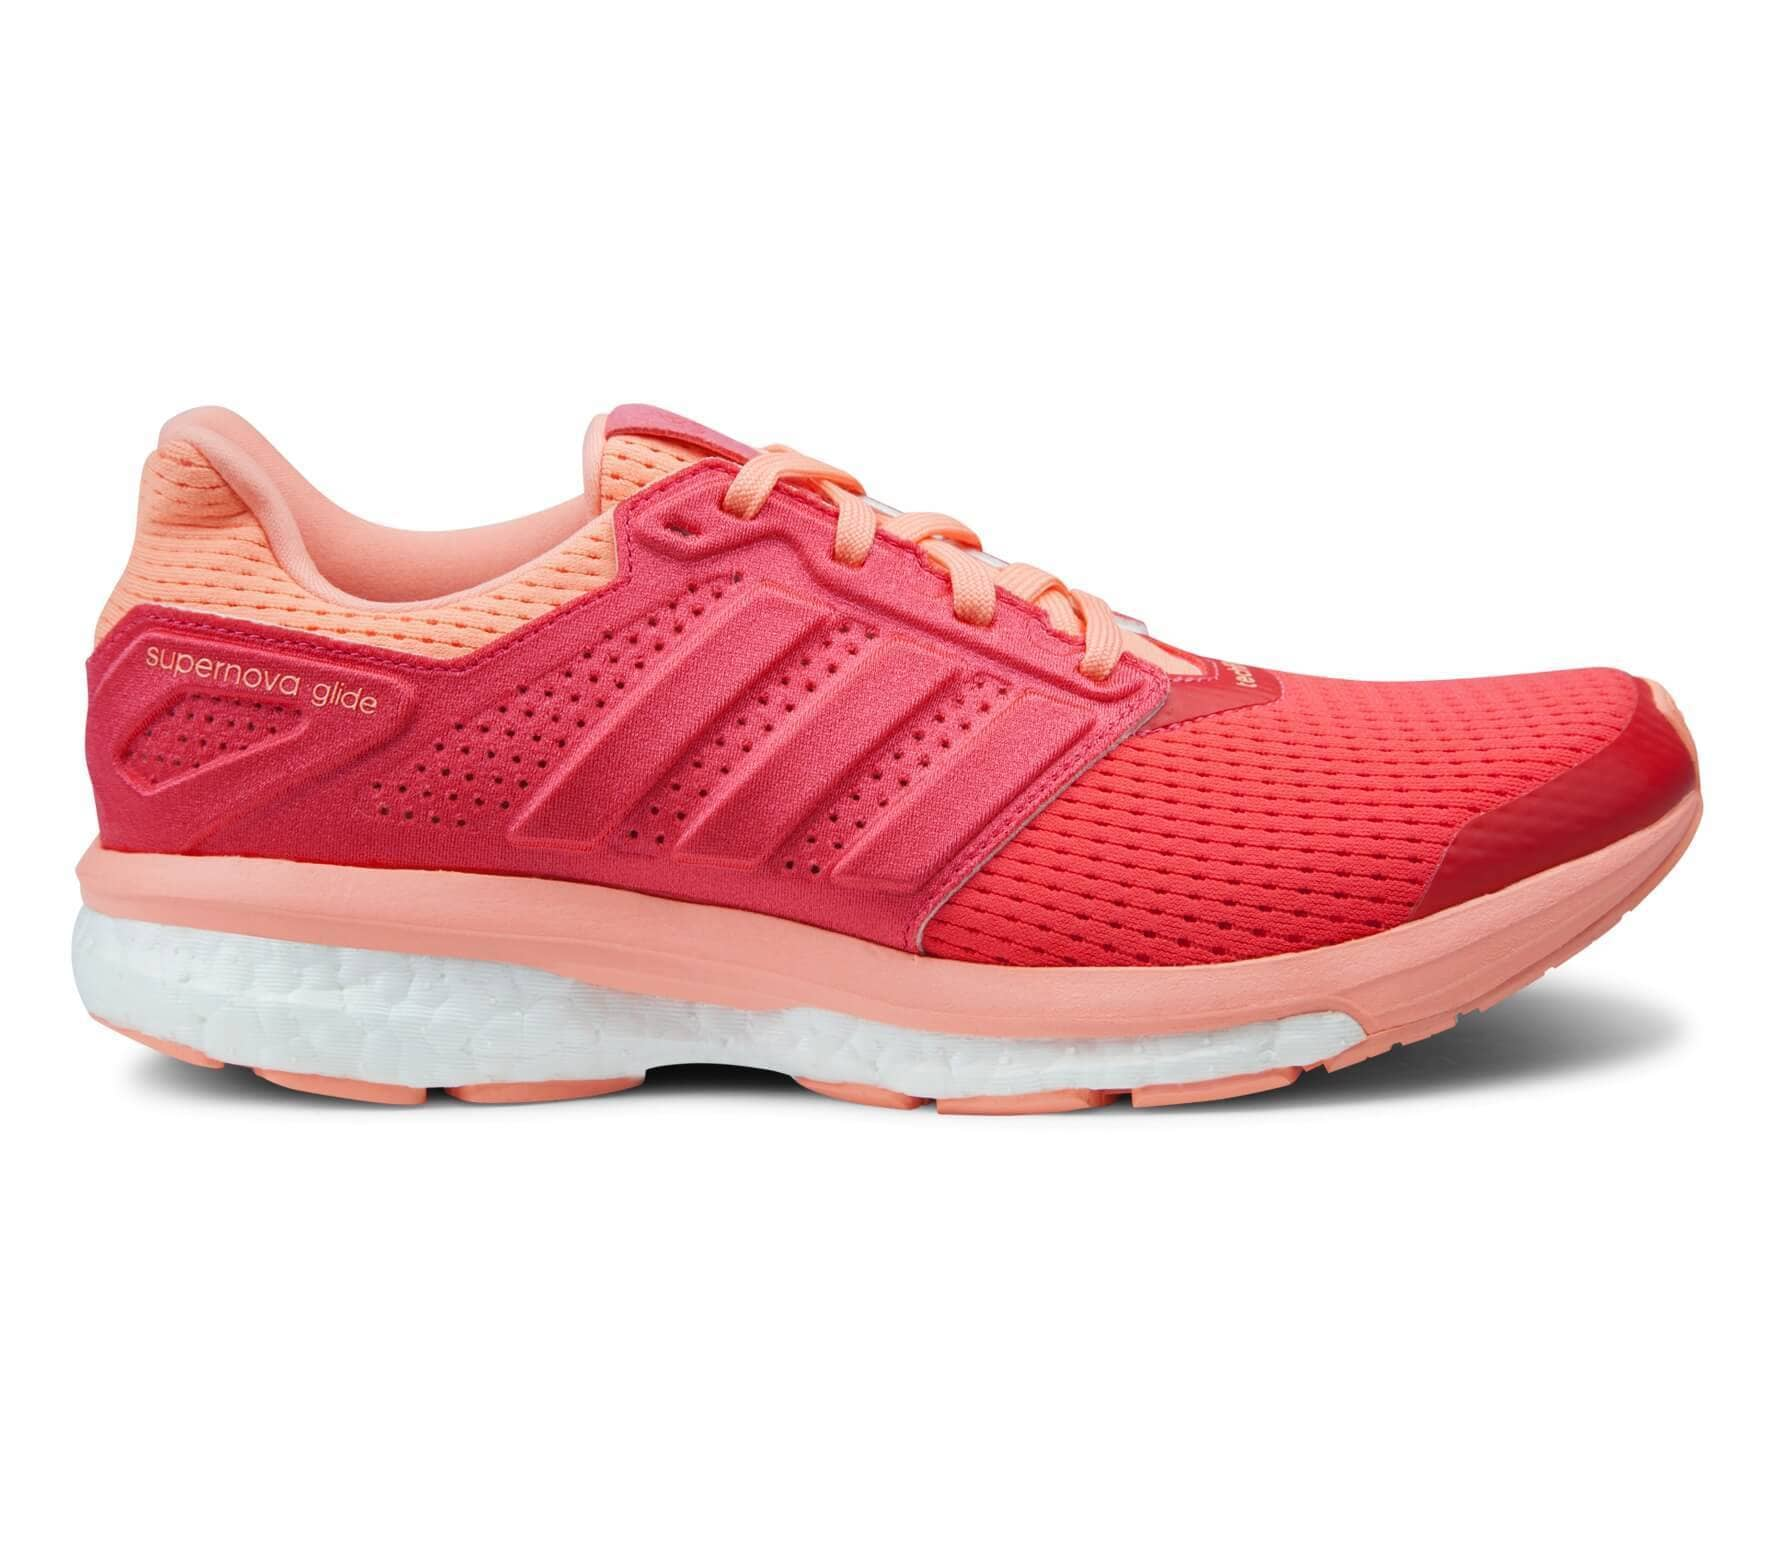 7c543ab14 Adidas - Supernova Glide Boost 8 women s running shoes (red) - buy ...